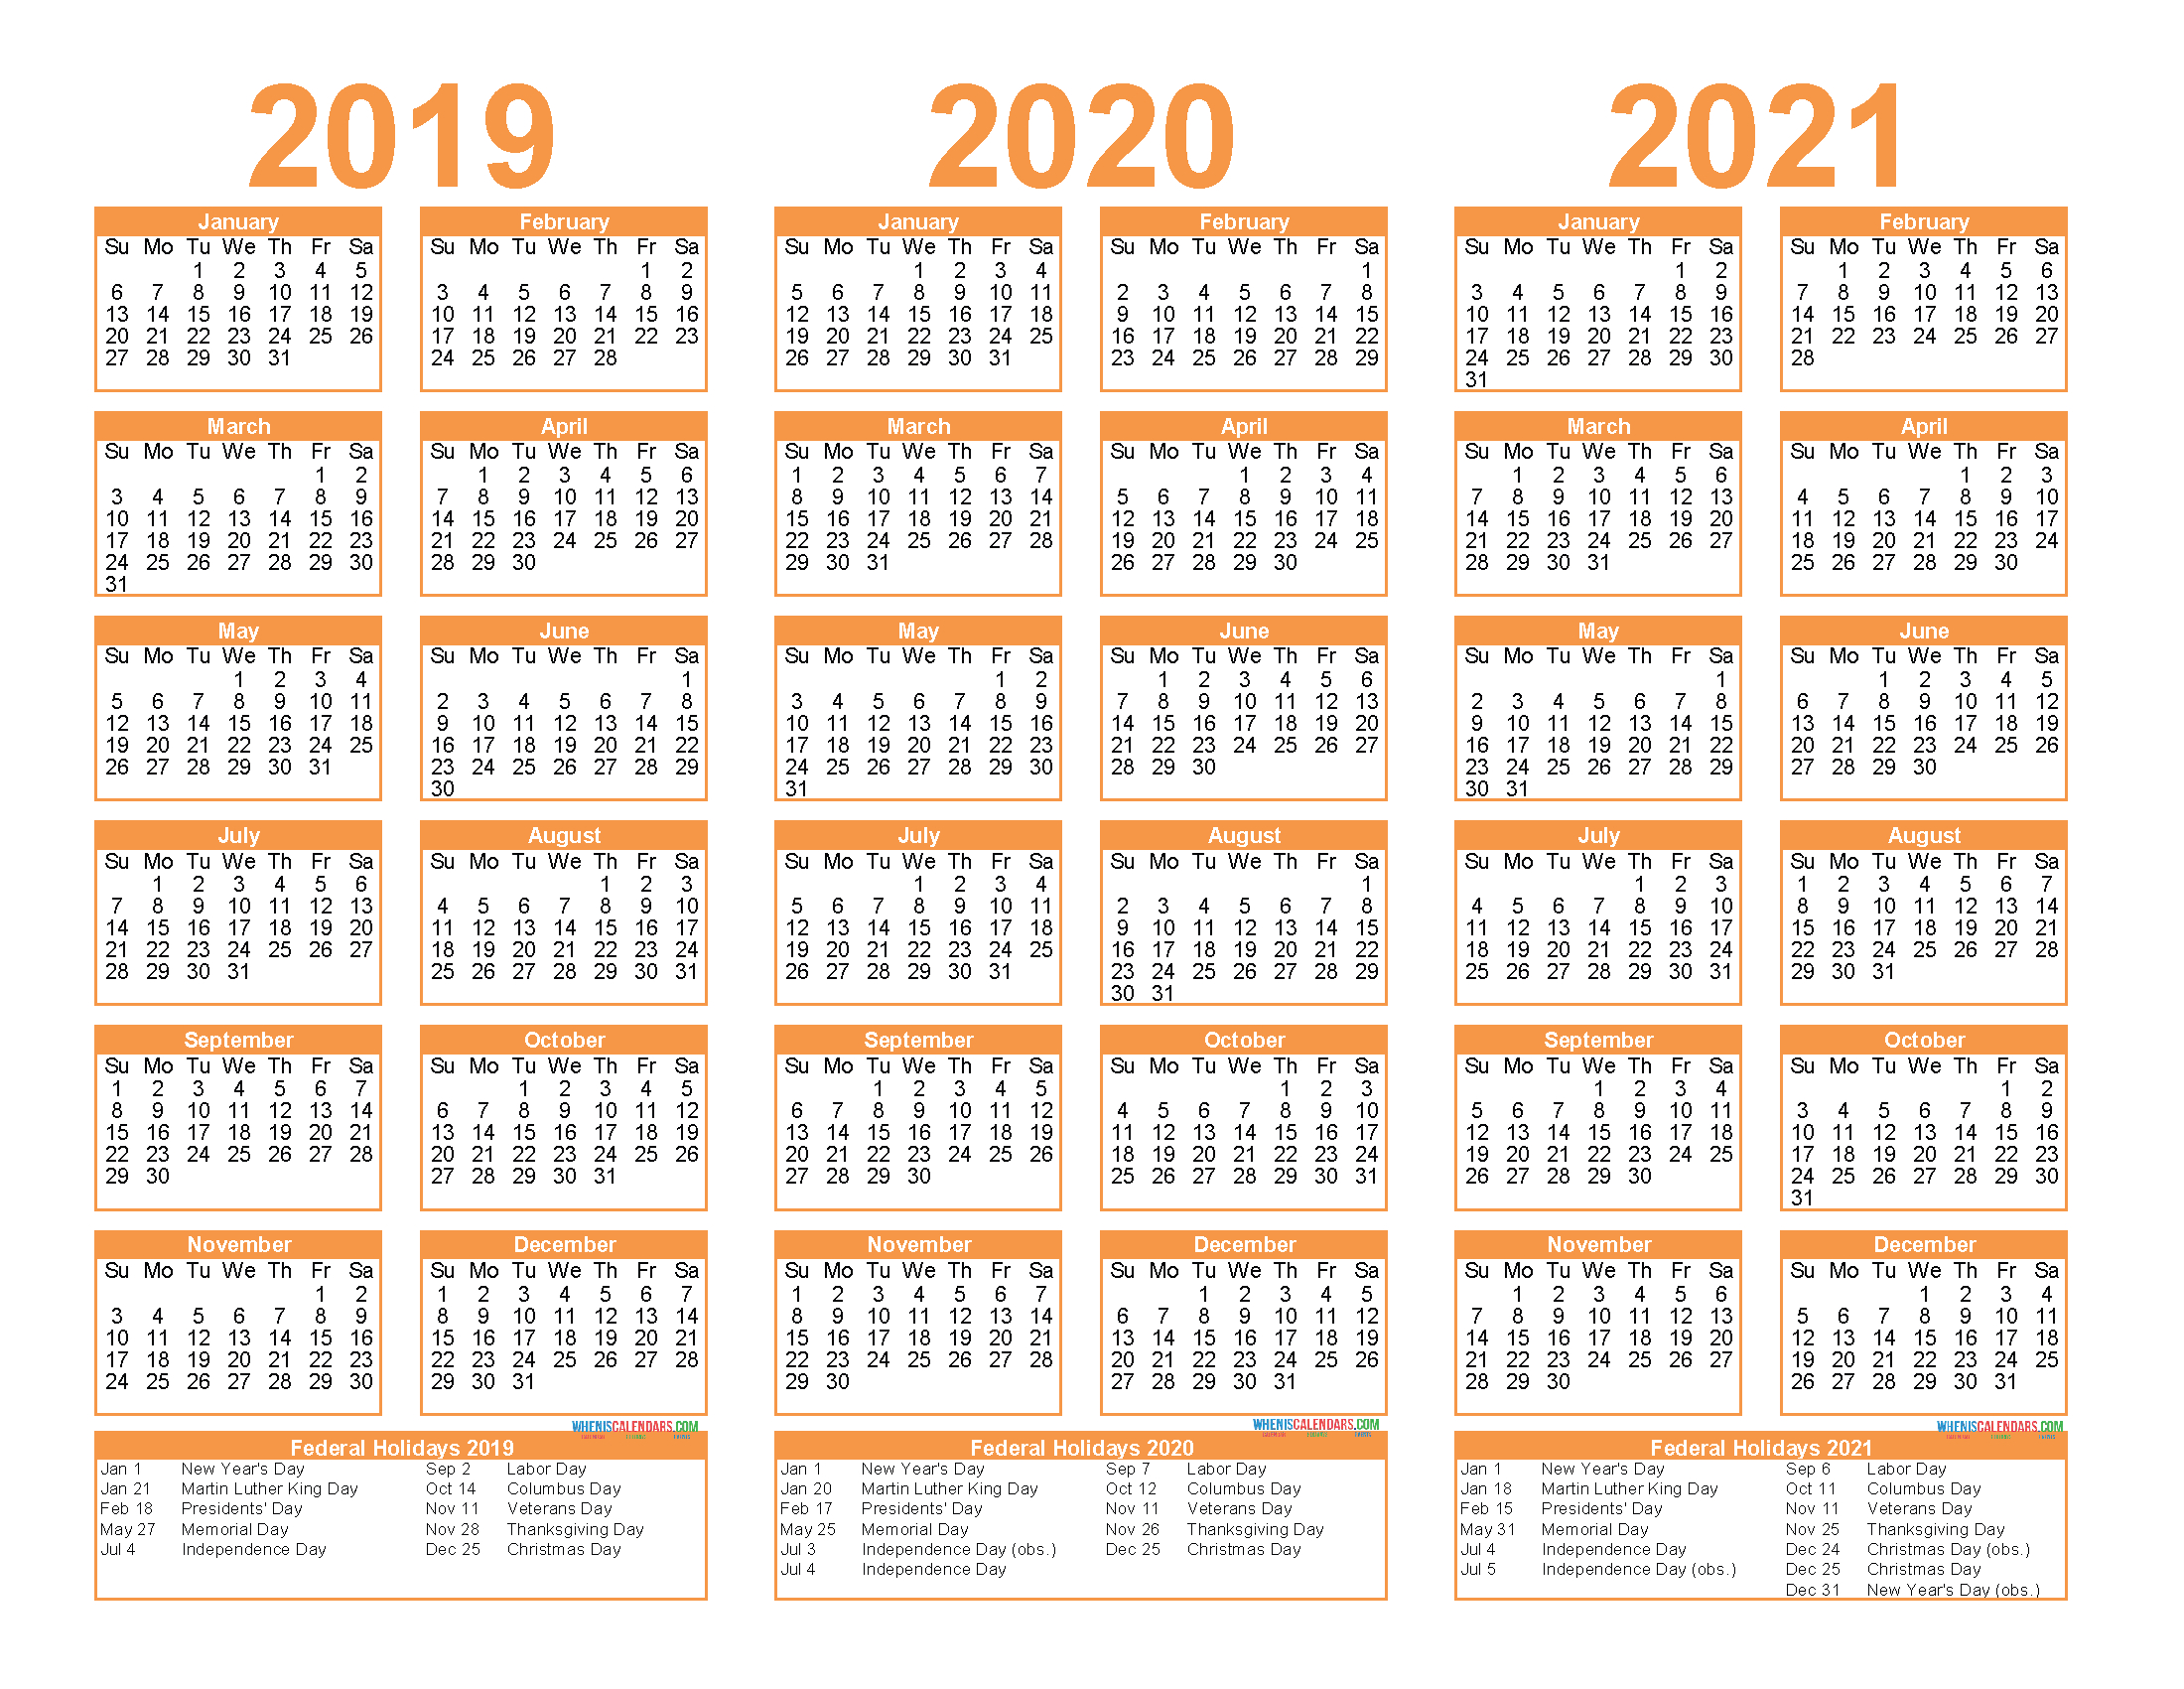 Free Printable 2019 2020 2021 Calendar With Holidays | Free throughout 3 Year Calendar 2020 To 2021 Excel